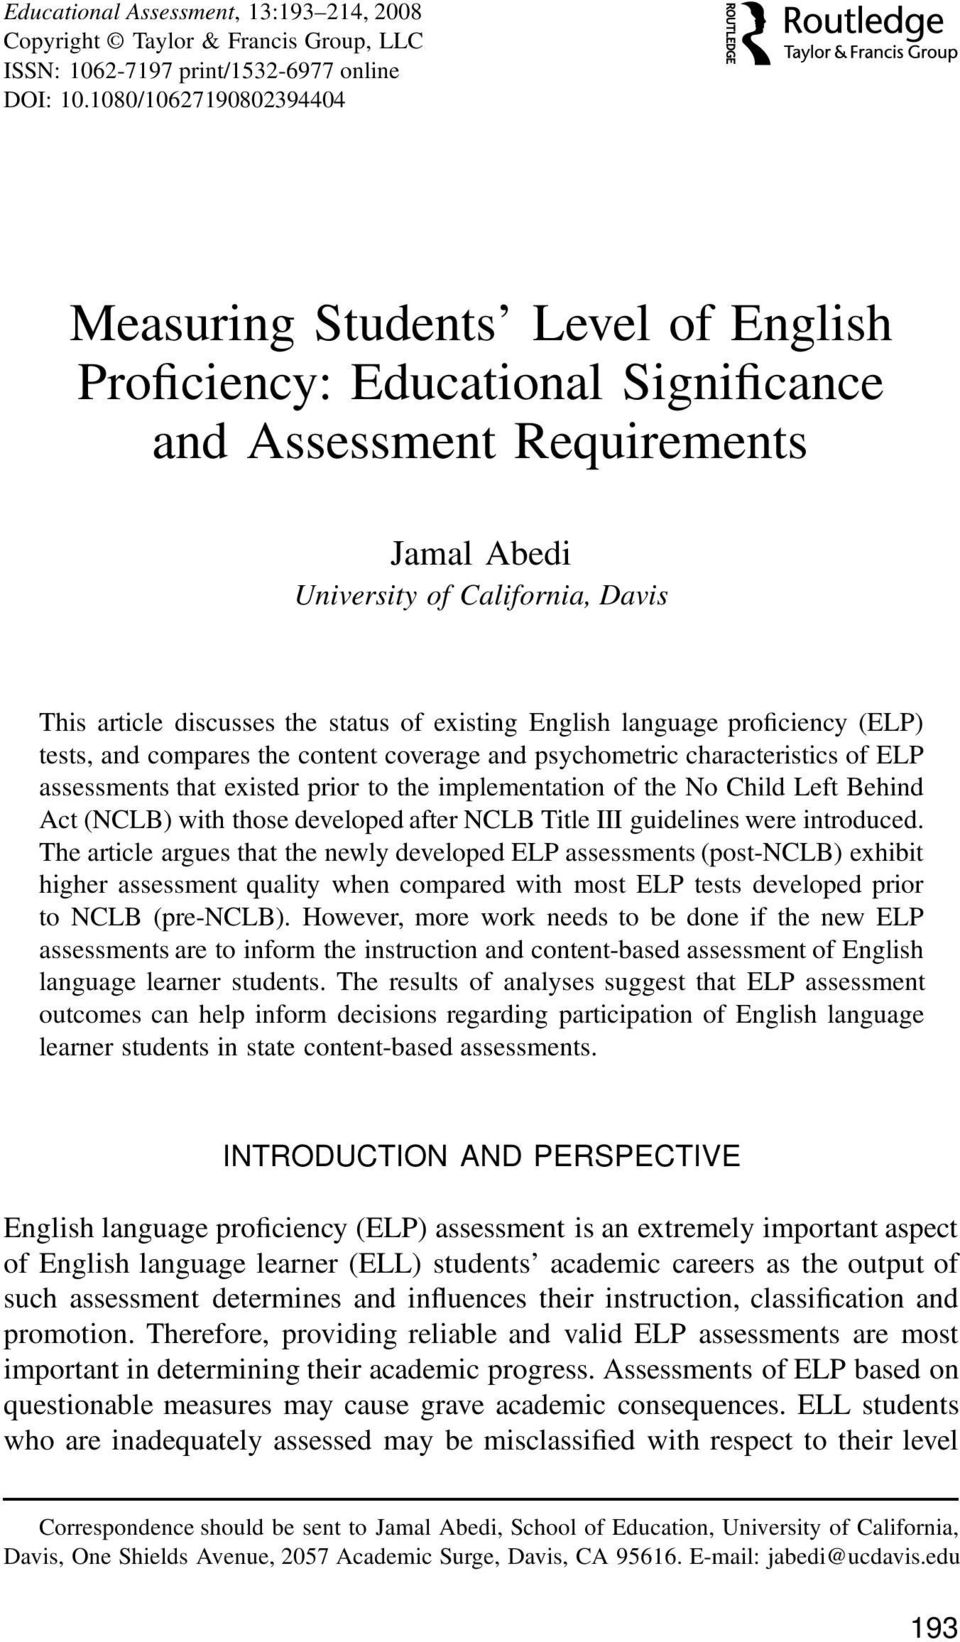 status of existing English language proficiency (ELP) tests, and compares the content coverage and psychometric characteristics of ELP assessments that existed prior to the implementation of the No